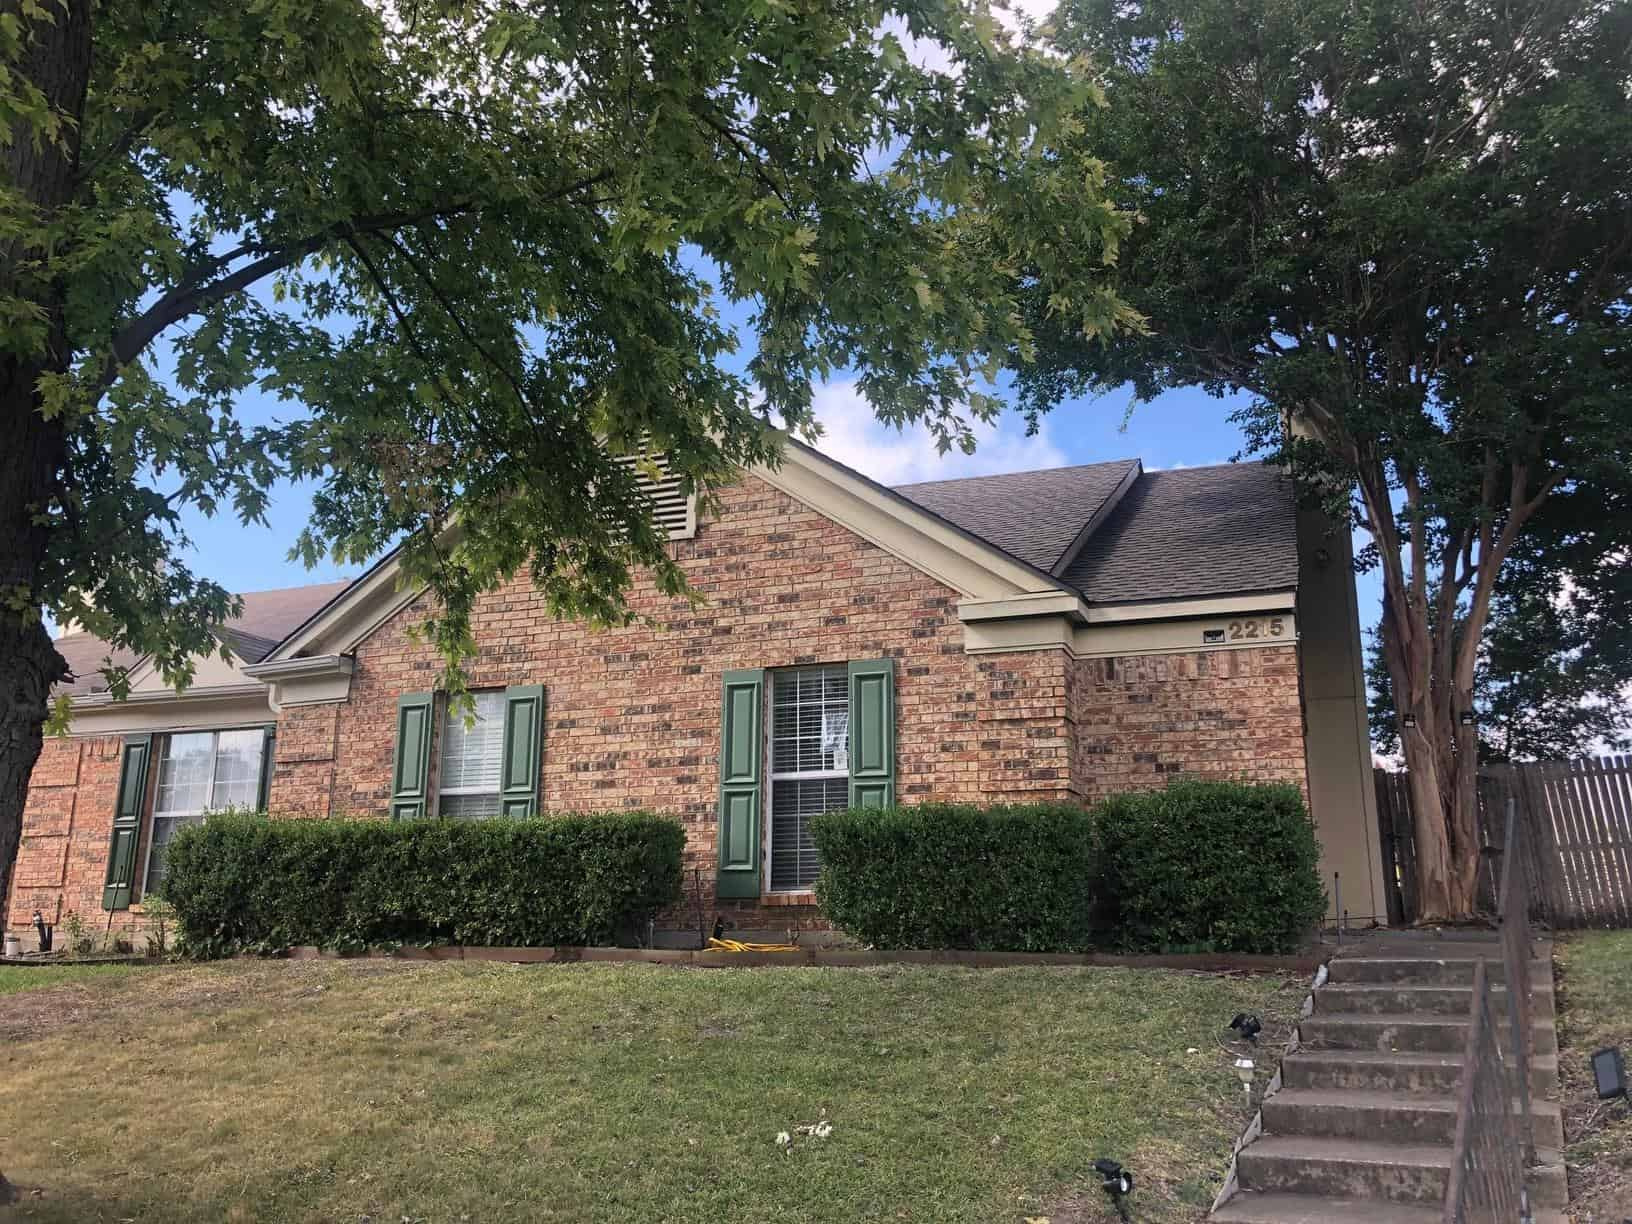 Garland, TX Roof Replacement Due to Hail - After